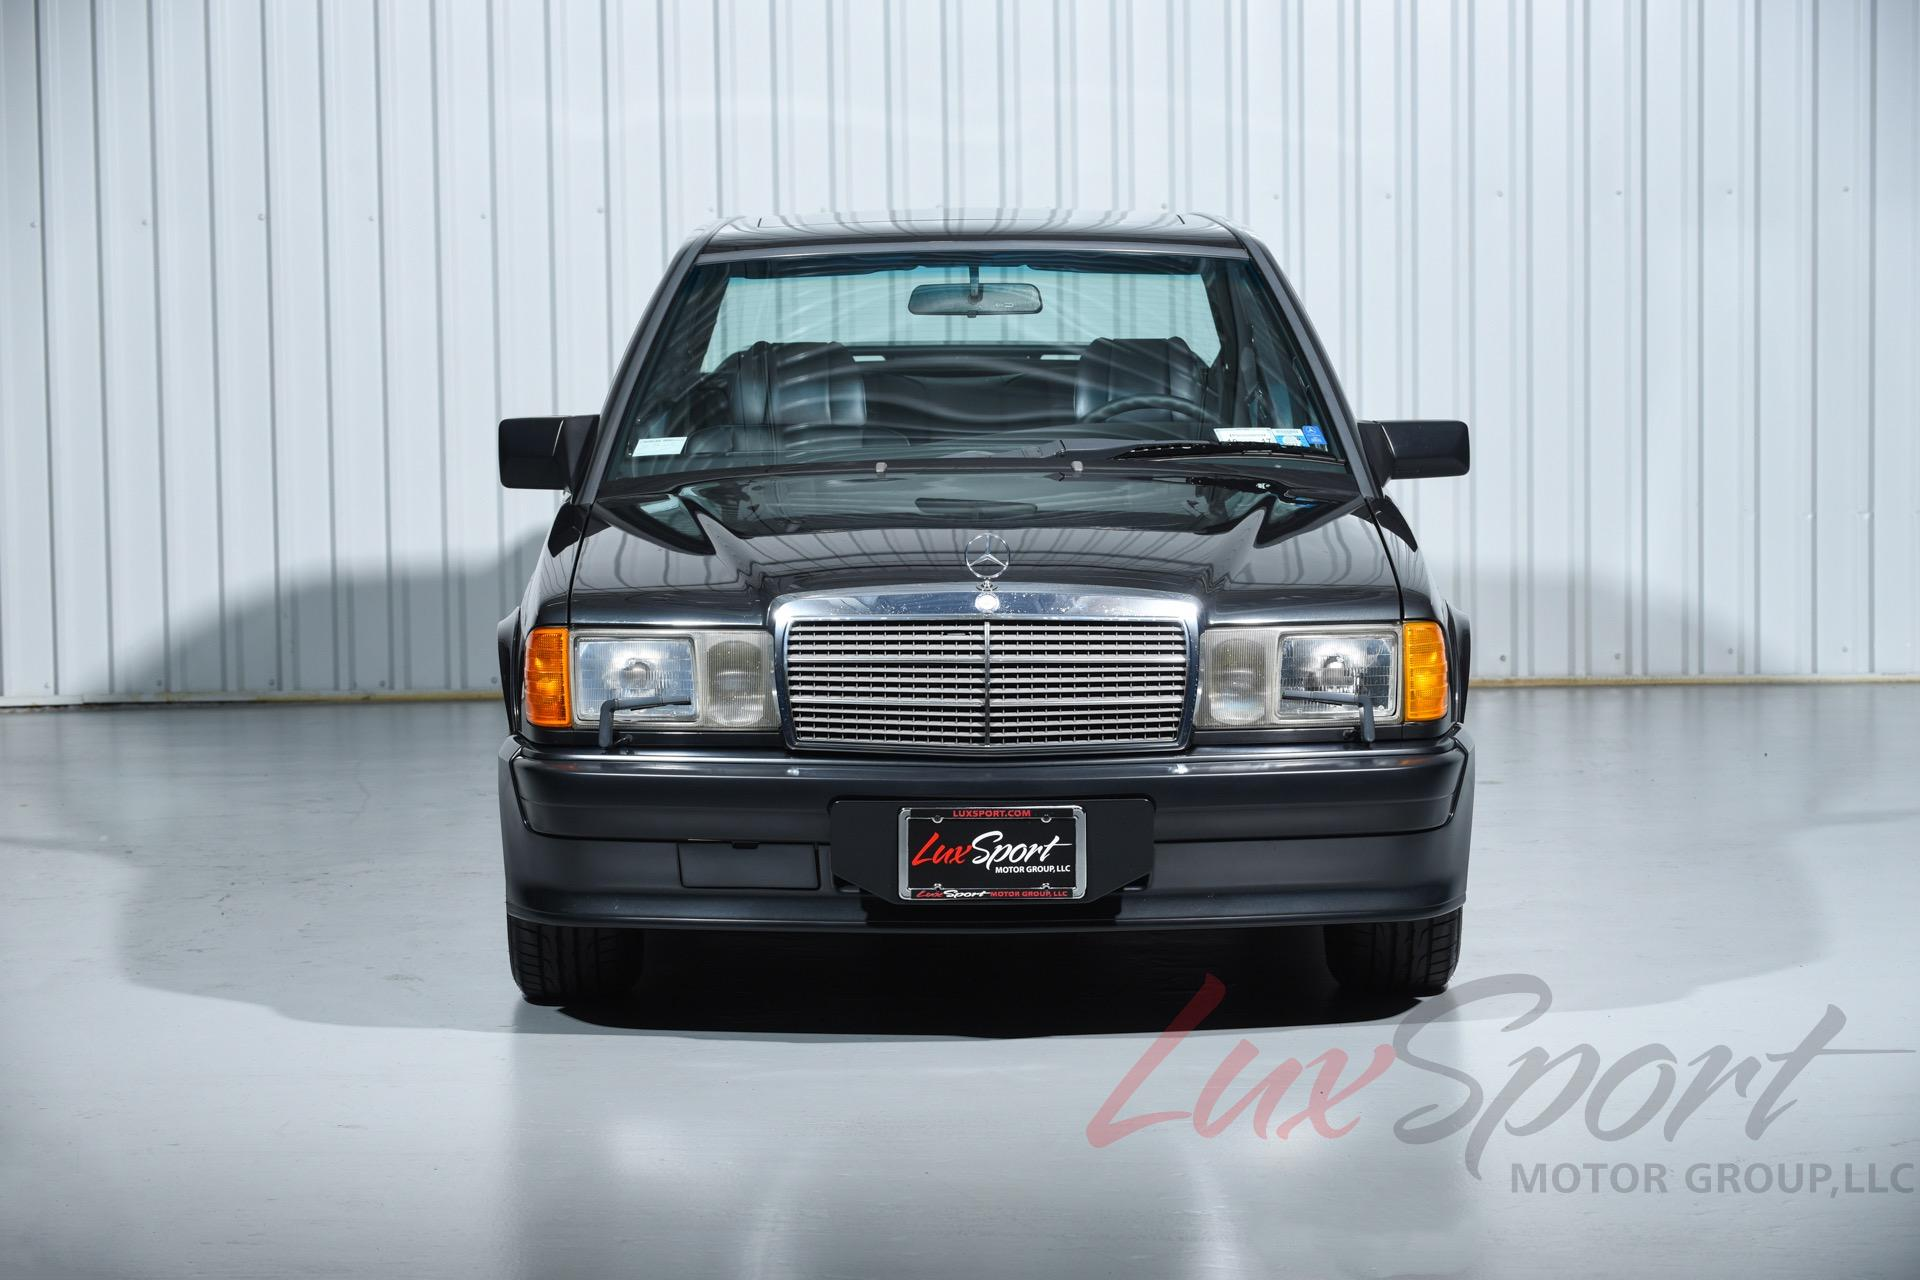 1987 Mercedes-Benz 190 E 2.3-16V Stock # 1987158 for sale near ... on